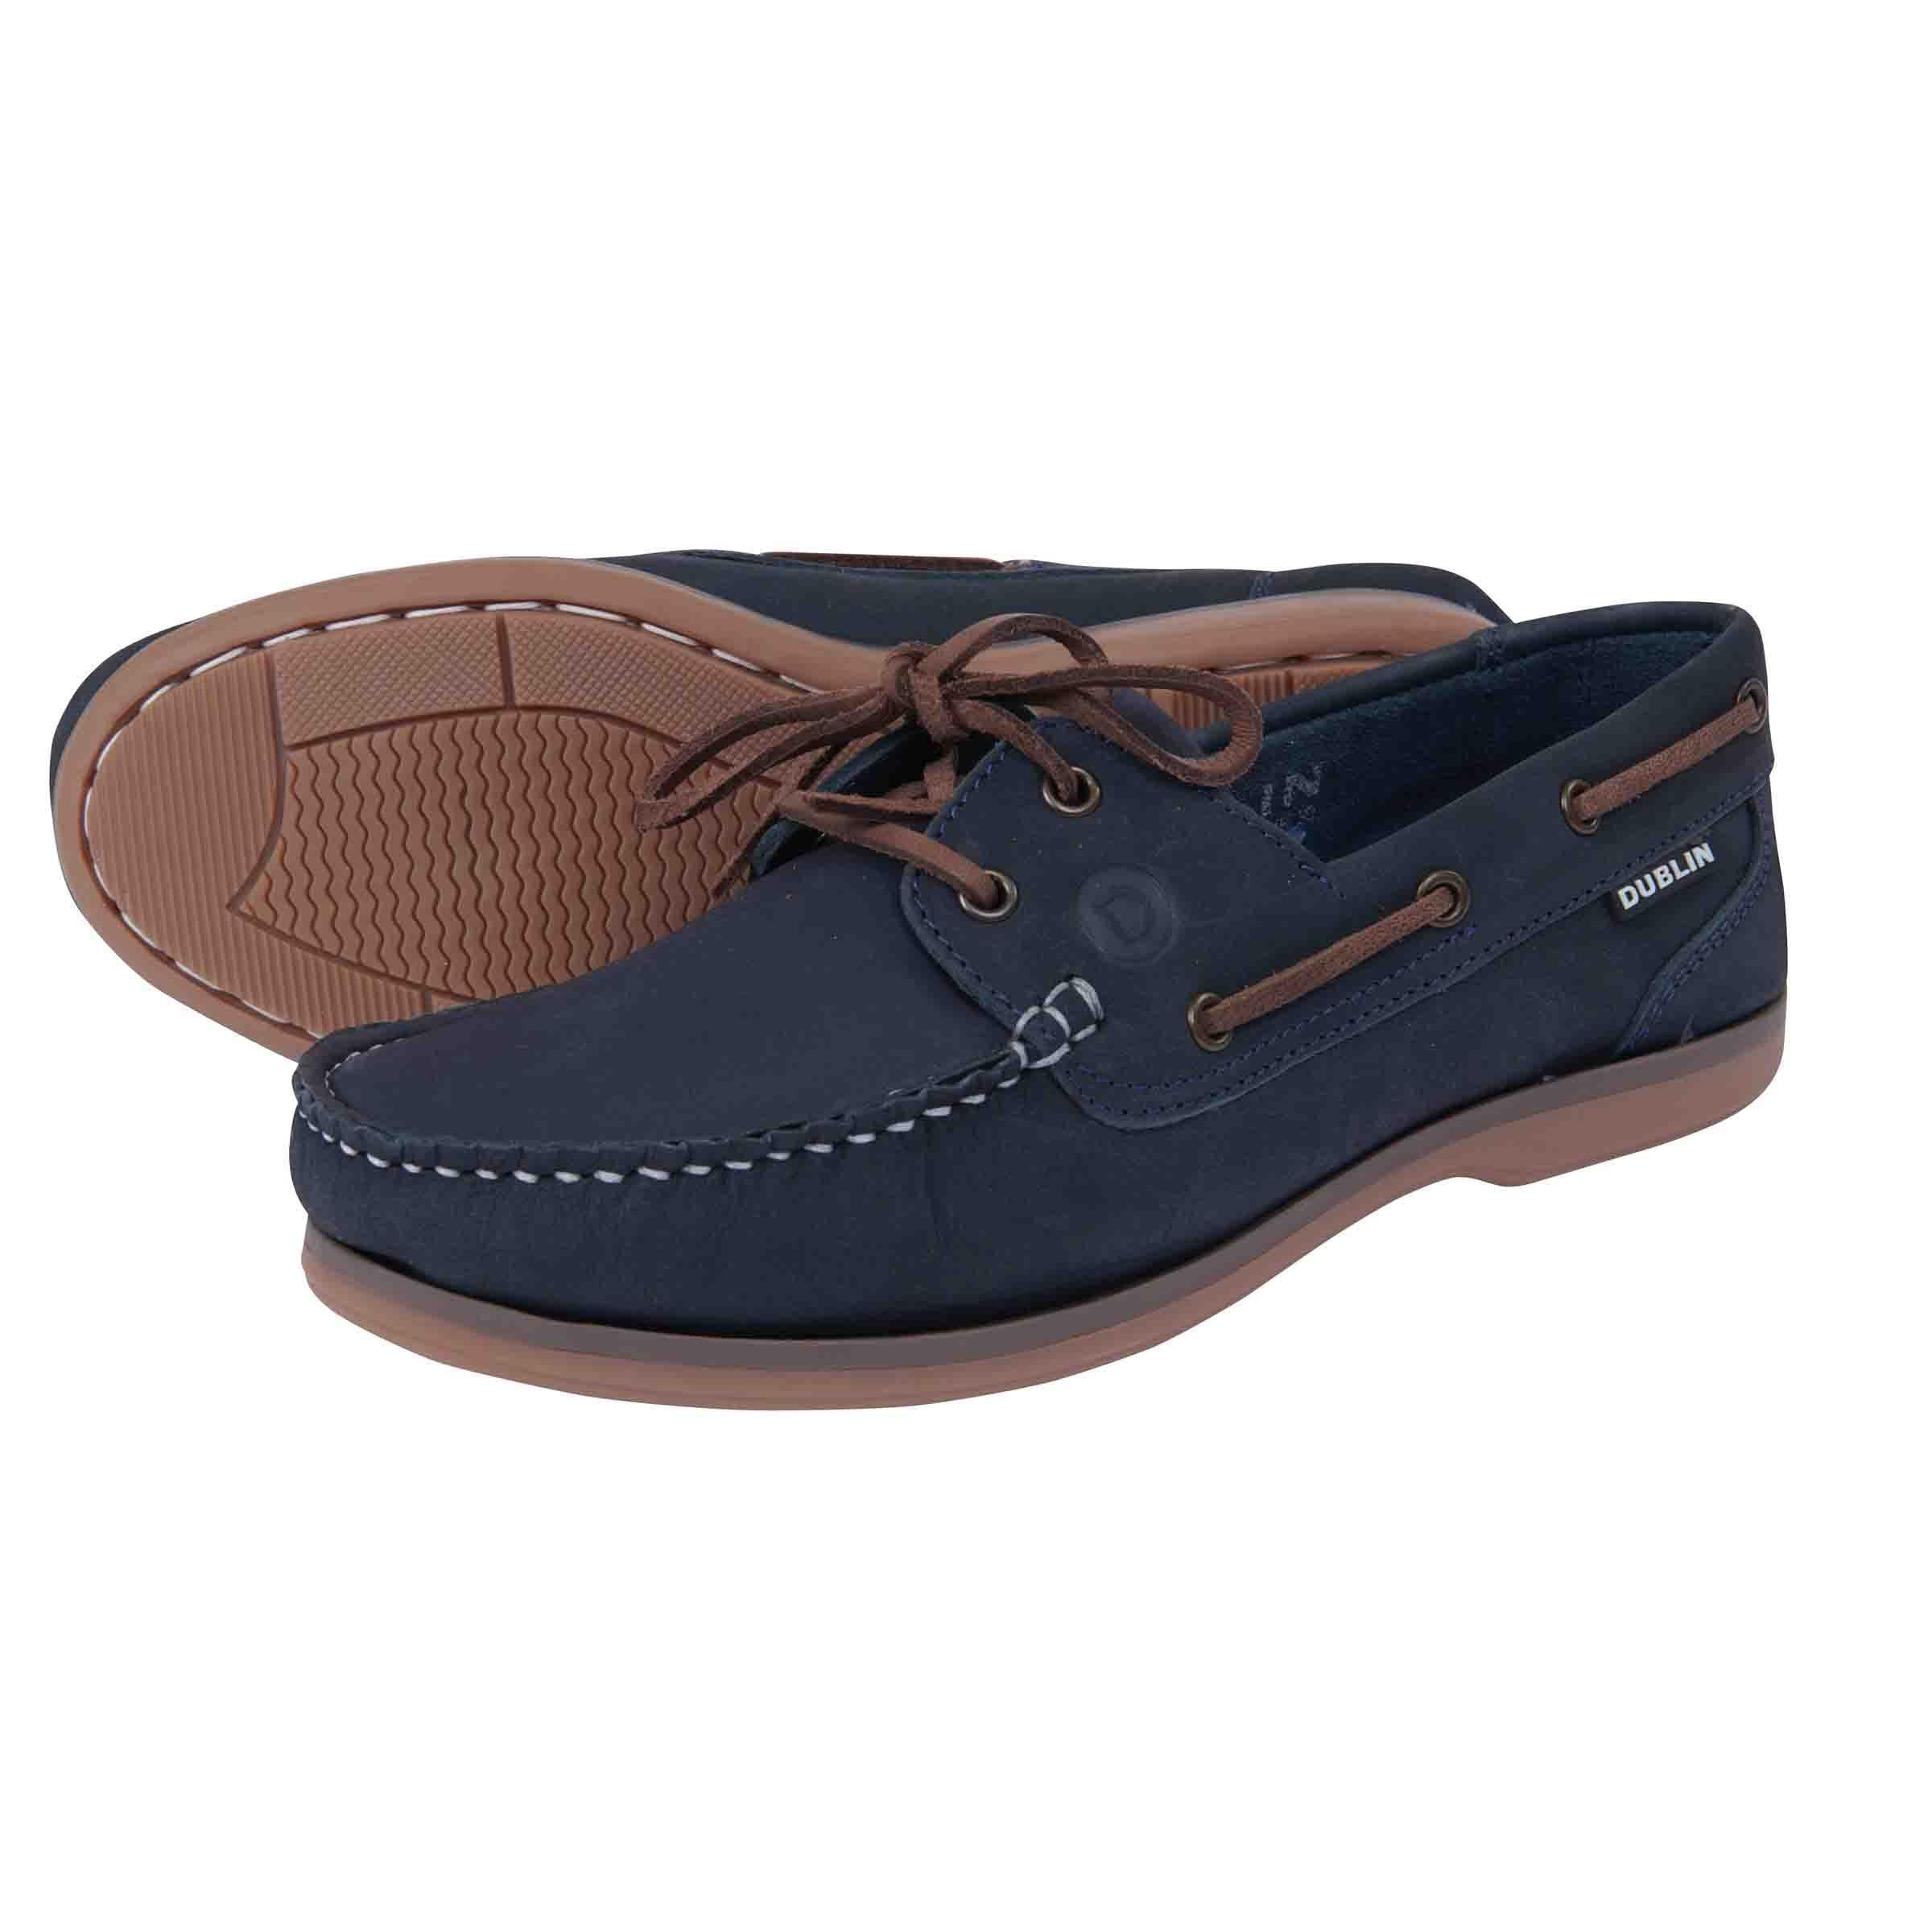 Dublin Broadfield Arena Shoes - Navy